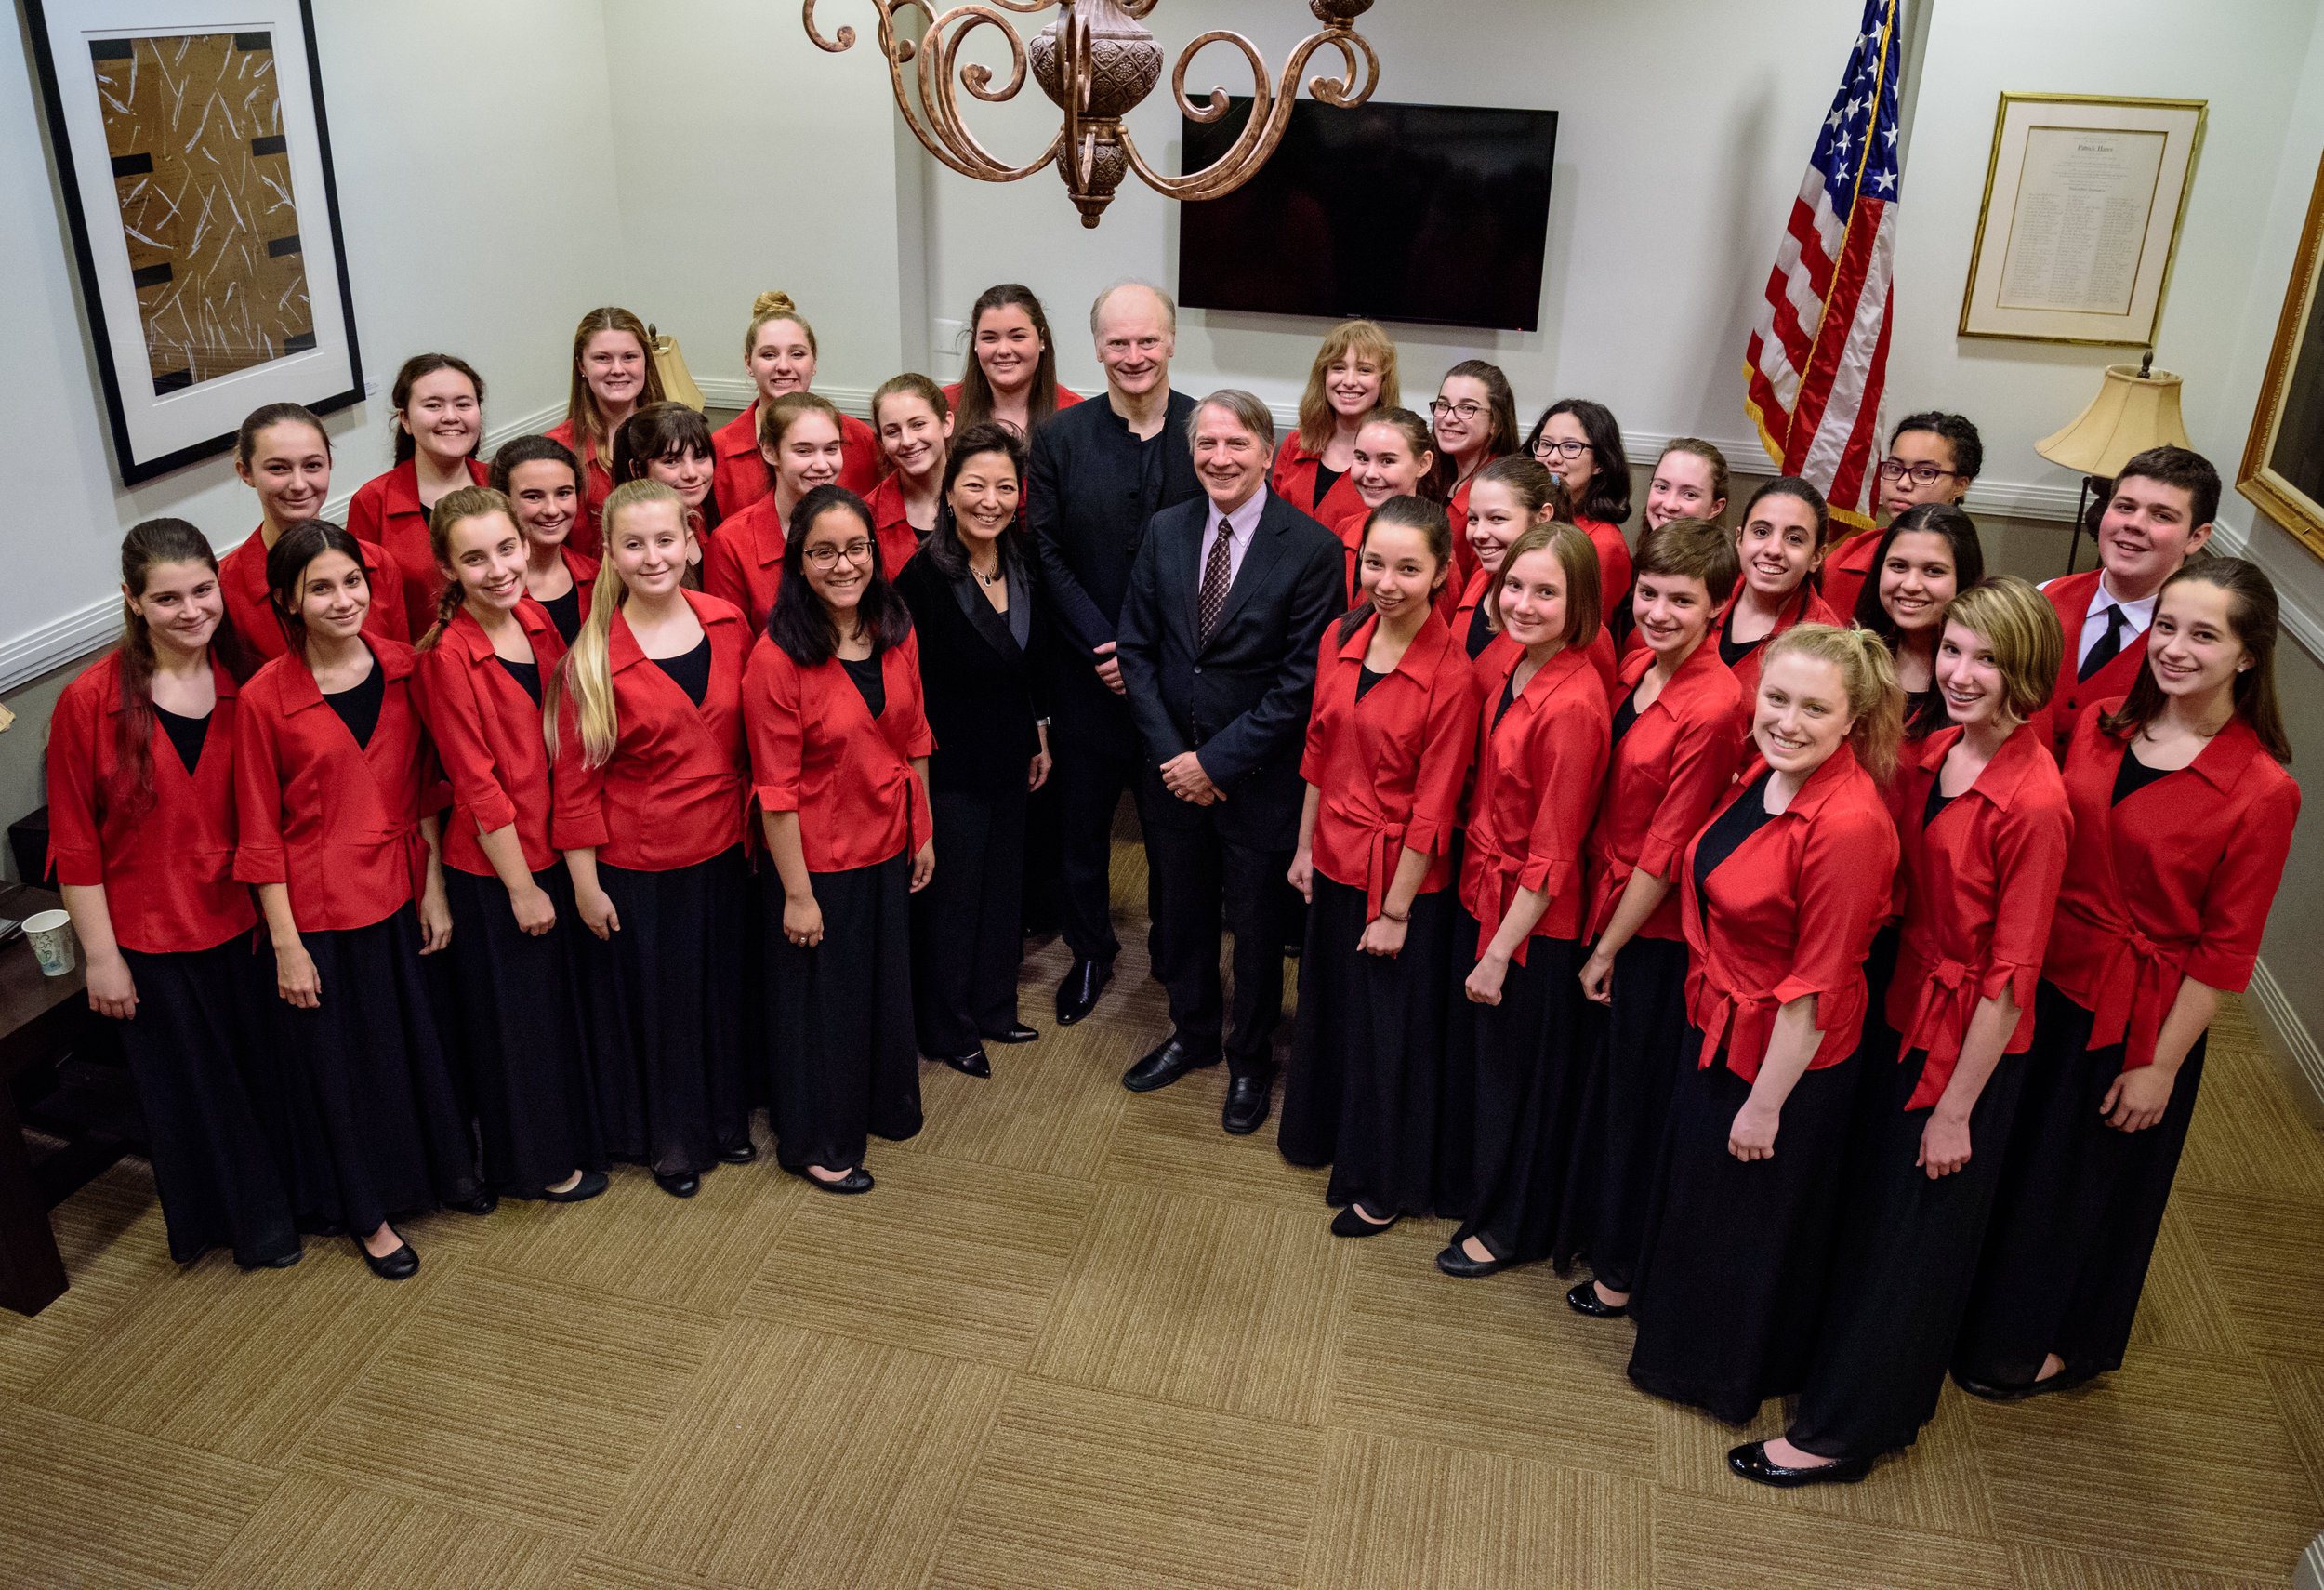 Margaret Nomura Clark with members of Concert Chorus at The Kennedy Center with Maestro Noseda of National Symphony Orchestra and Scott Tucker of The Choral Arts Society of Washington after Saturday evening's performance. Photo: Scott Clark